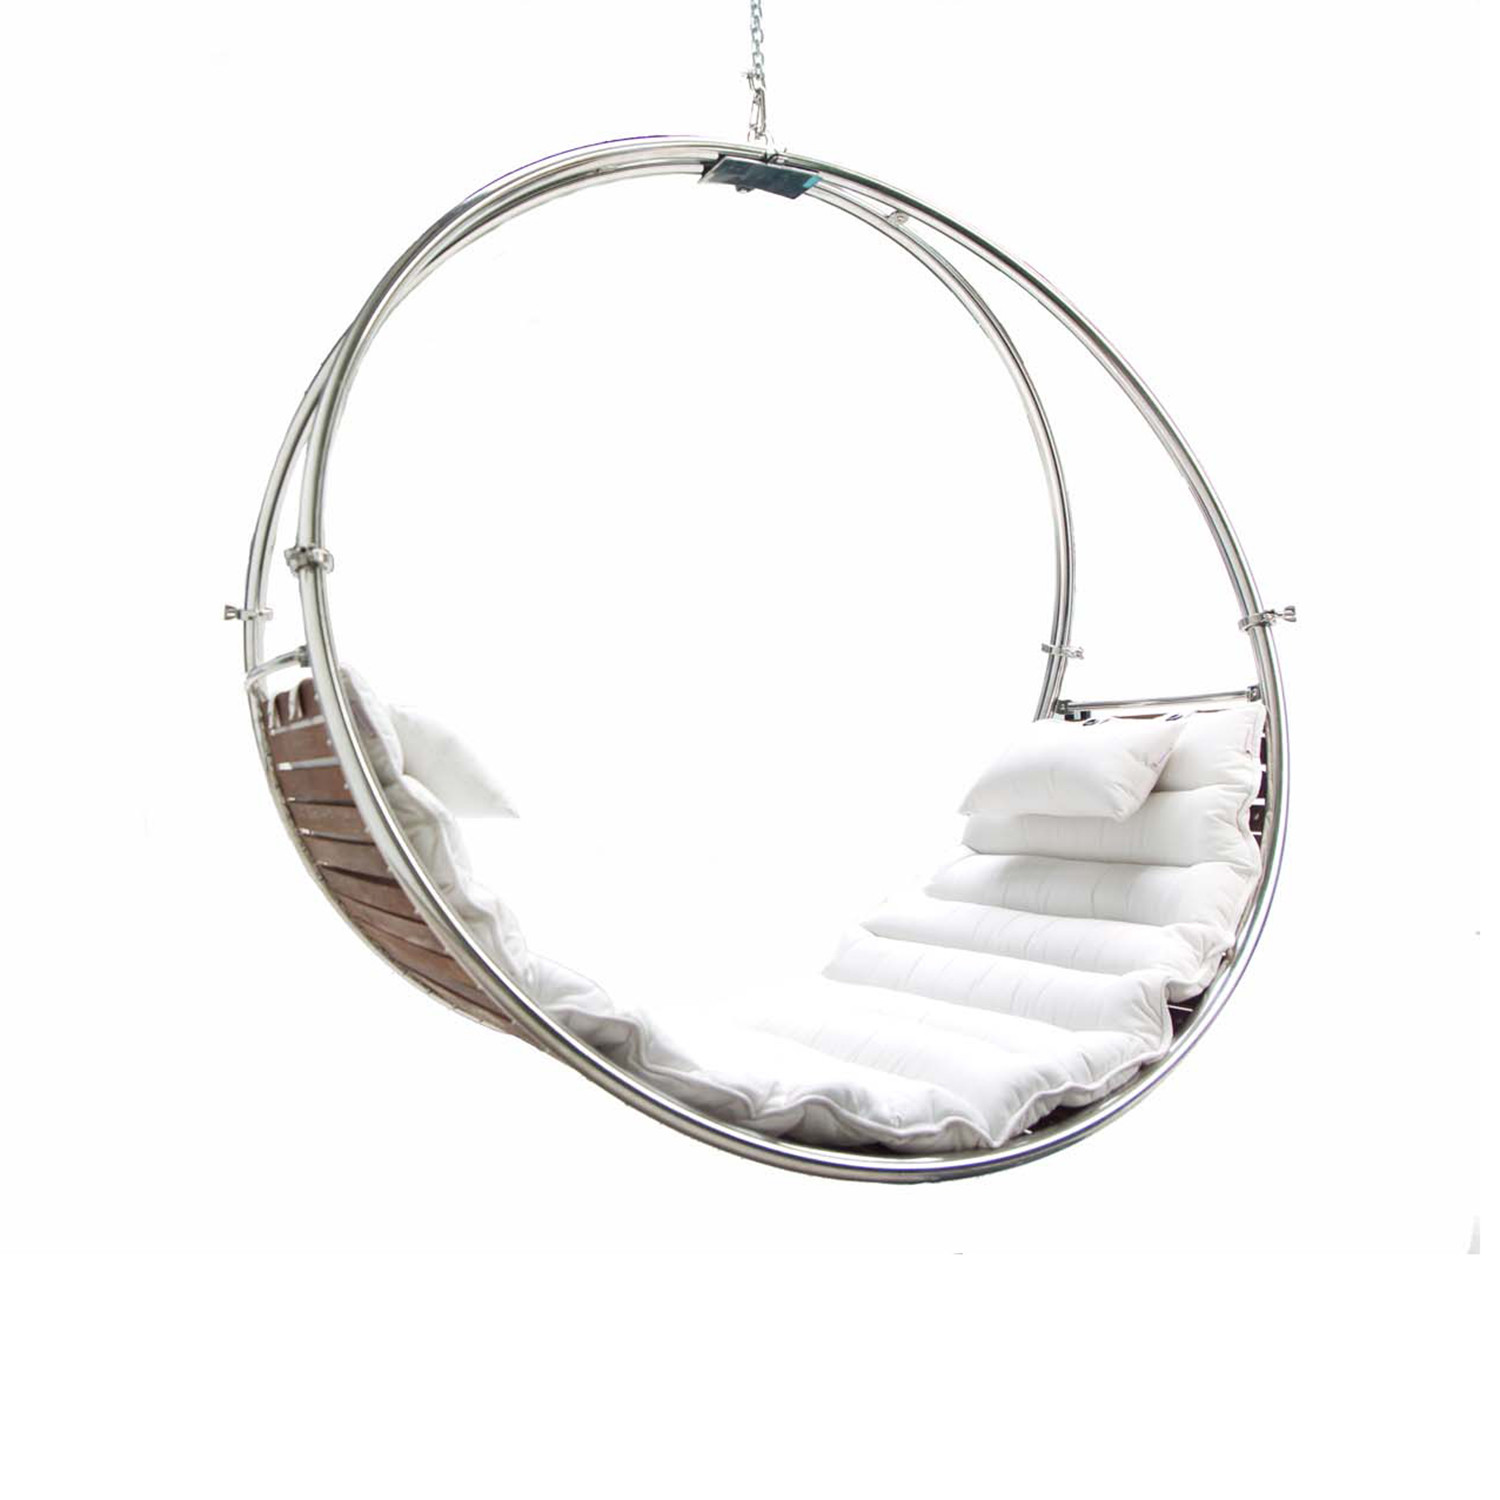 Duality Hanging Chair - Trinity Hammocks - Touch of Modern